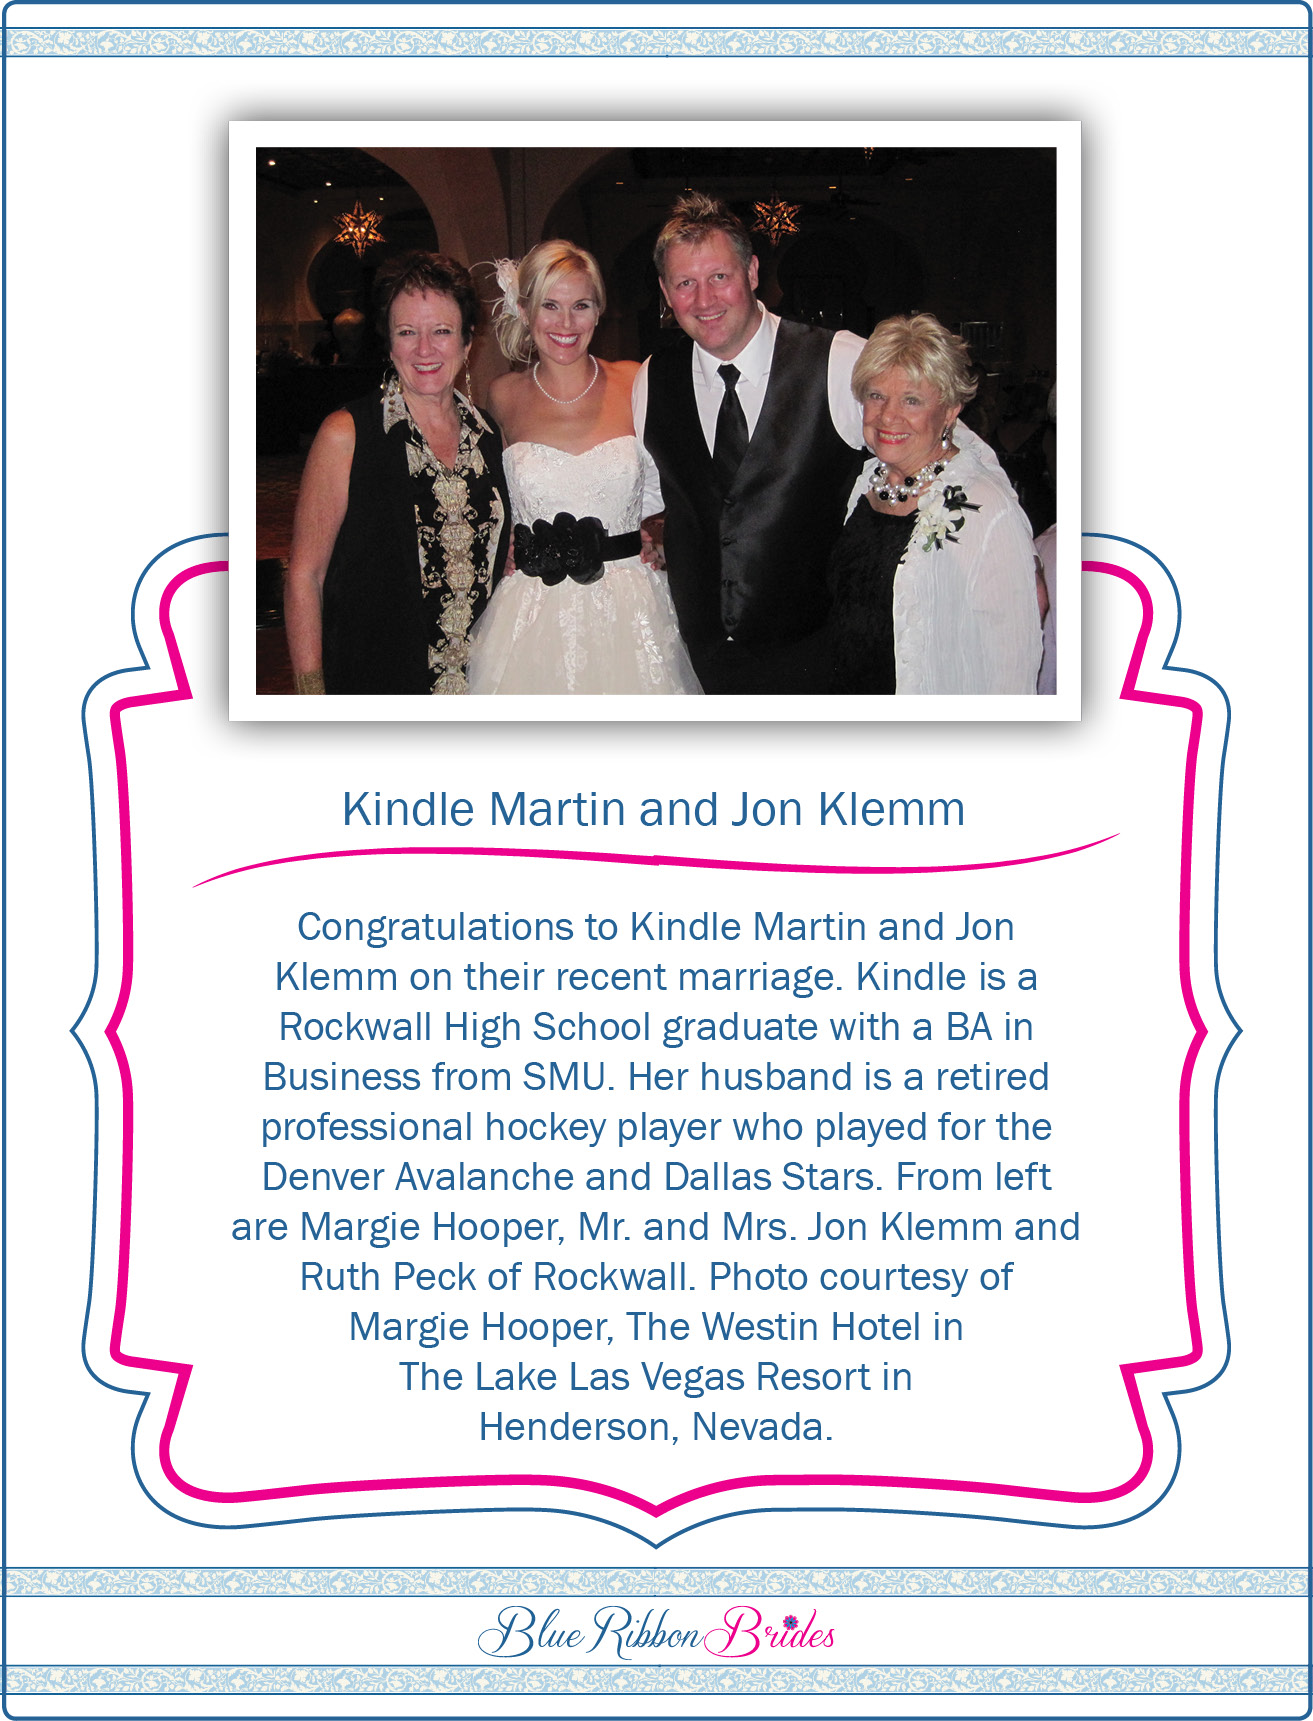 Blue-Ribbon-Brides kindle martin and Jon Klemm